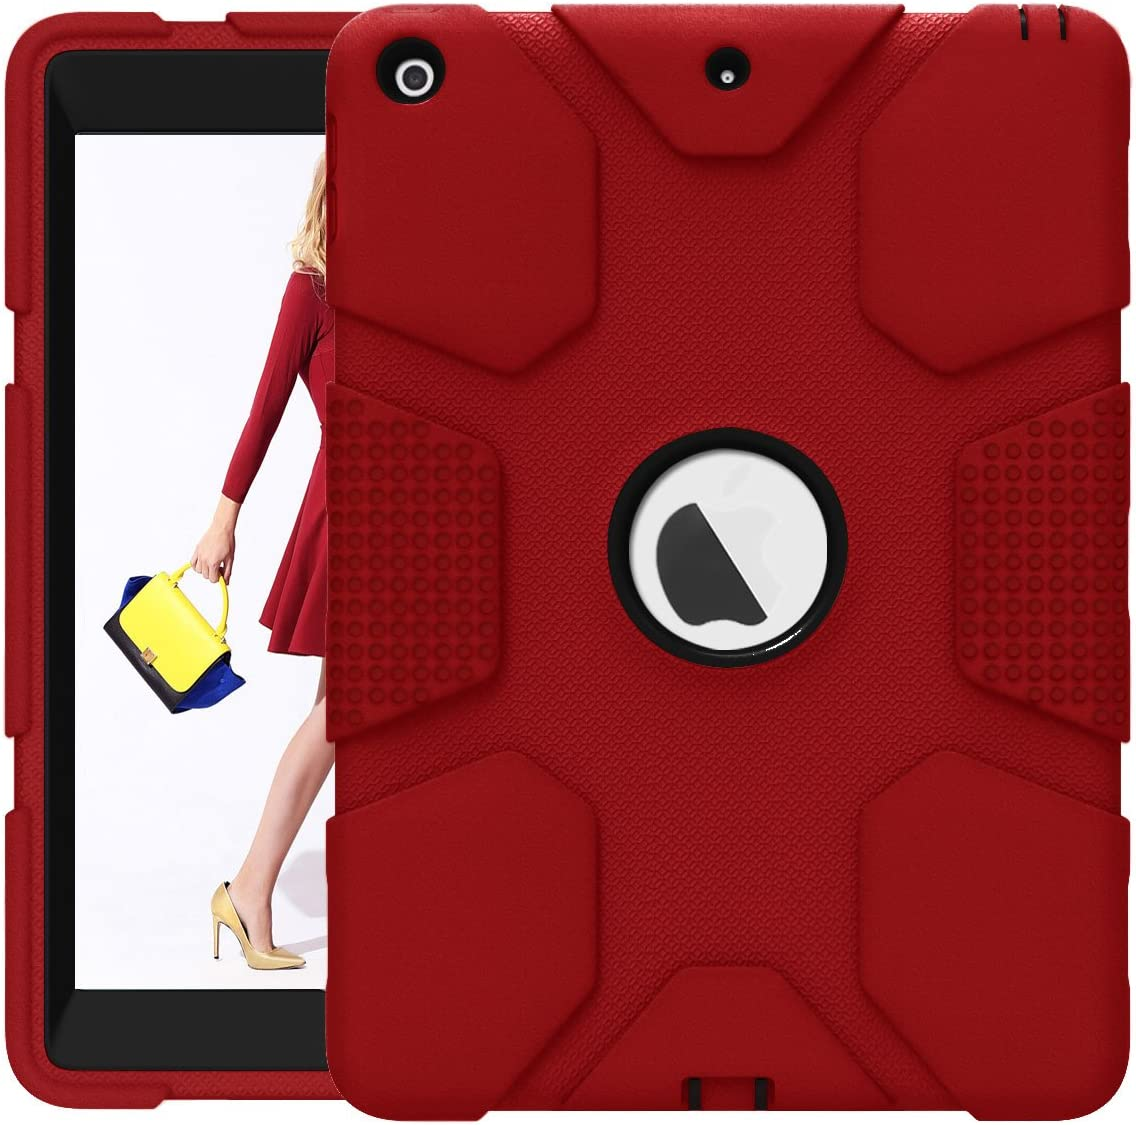 iPad 9.7 2017 2018 Case, ZHK Rugged Heavy Duty Shockproof Hybrid Hard PC Bumper Silicone Dual Layer Protective Case with Kickstand for iPad 5th 6th Generation - Red and Black